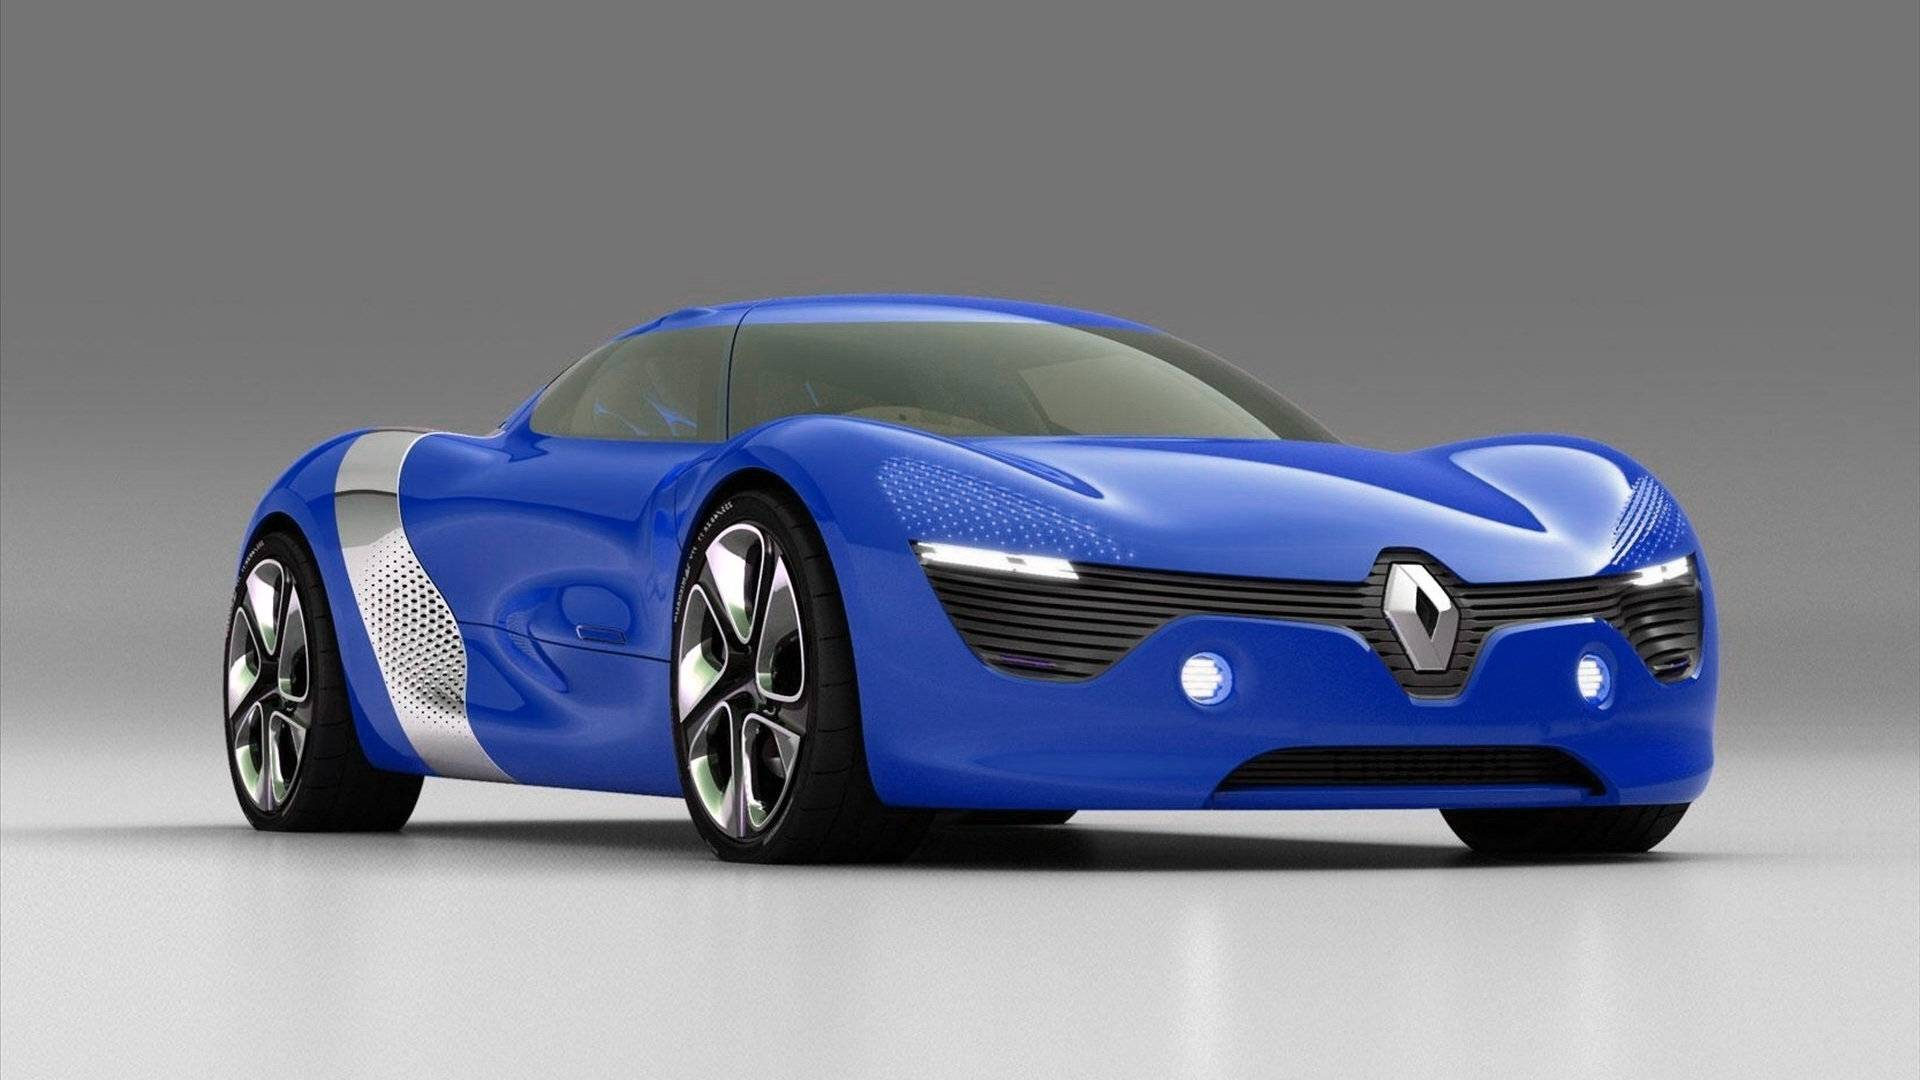 Car Renault Royal Blue Sports Car Wallpaper 1920x1080 - Cool PC ...